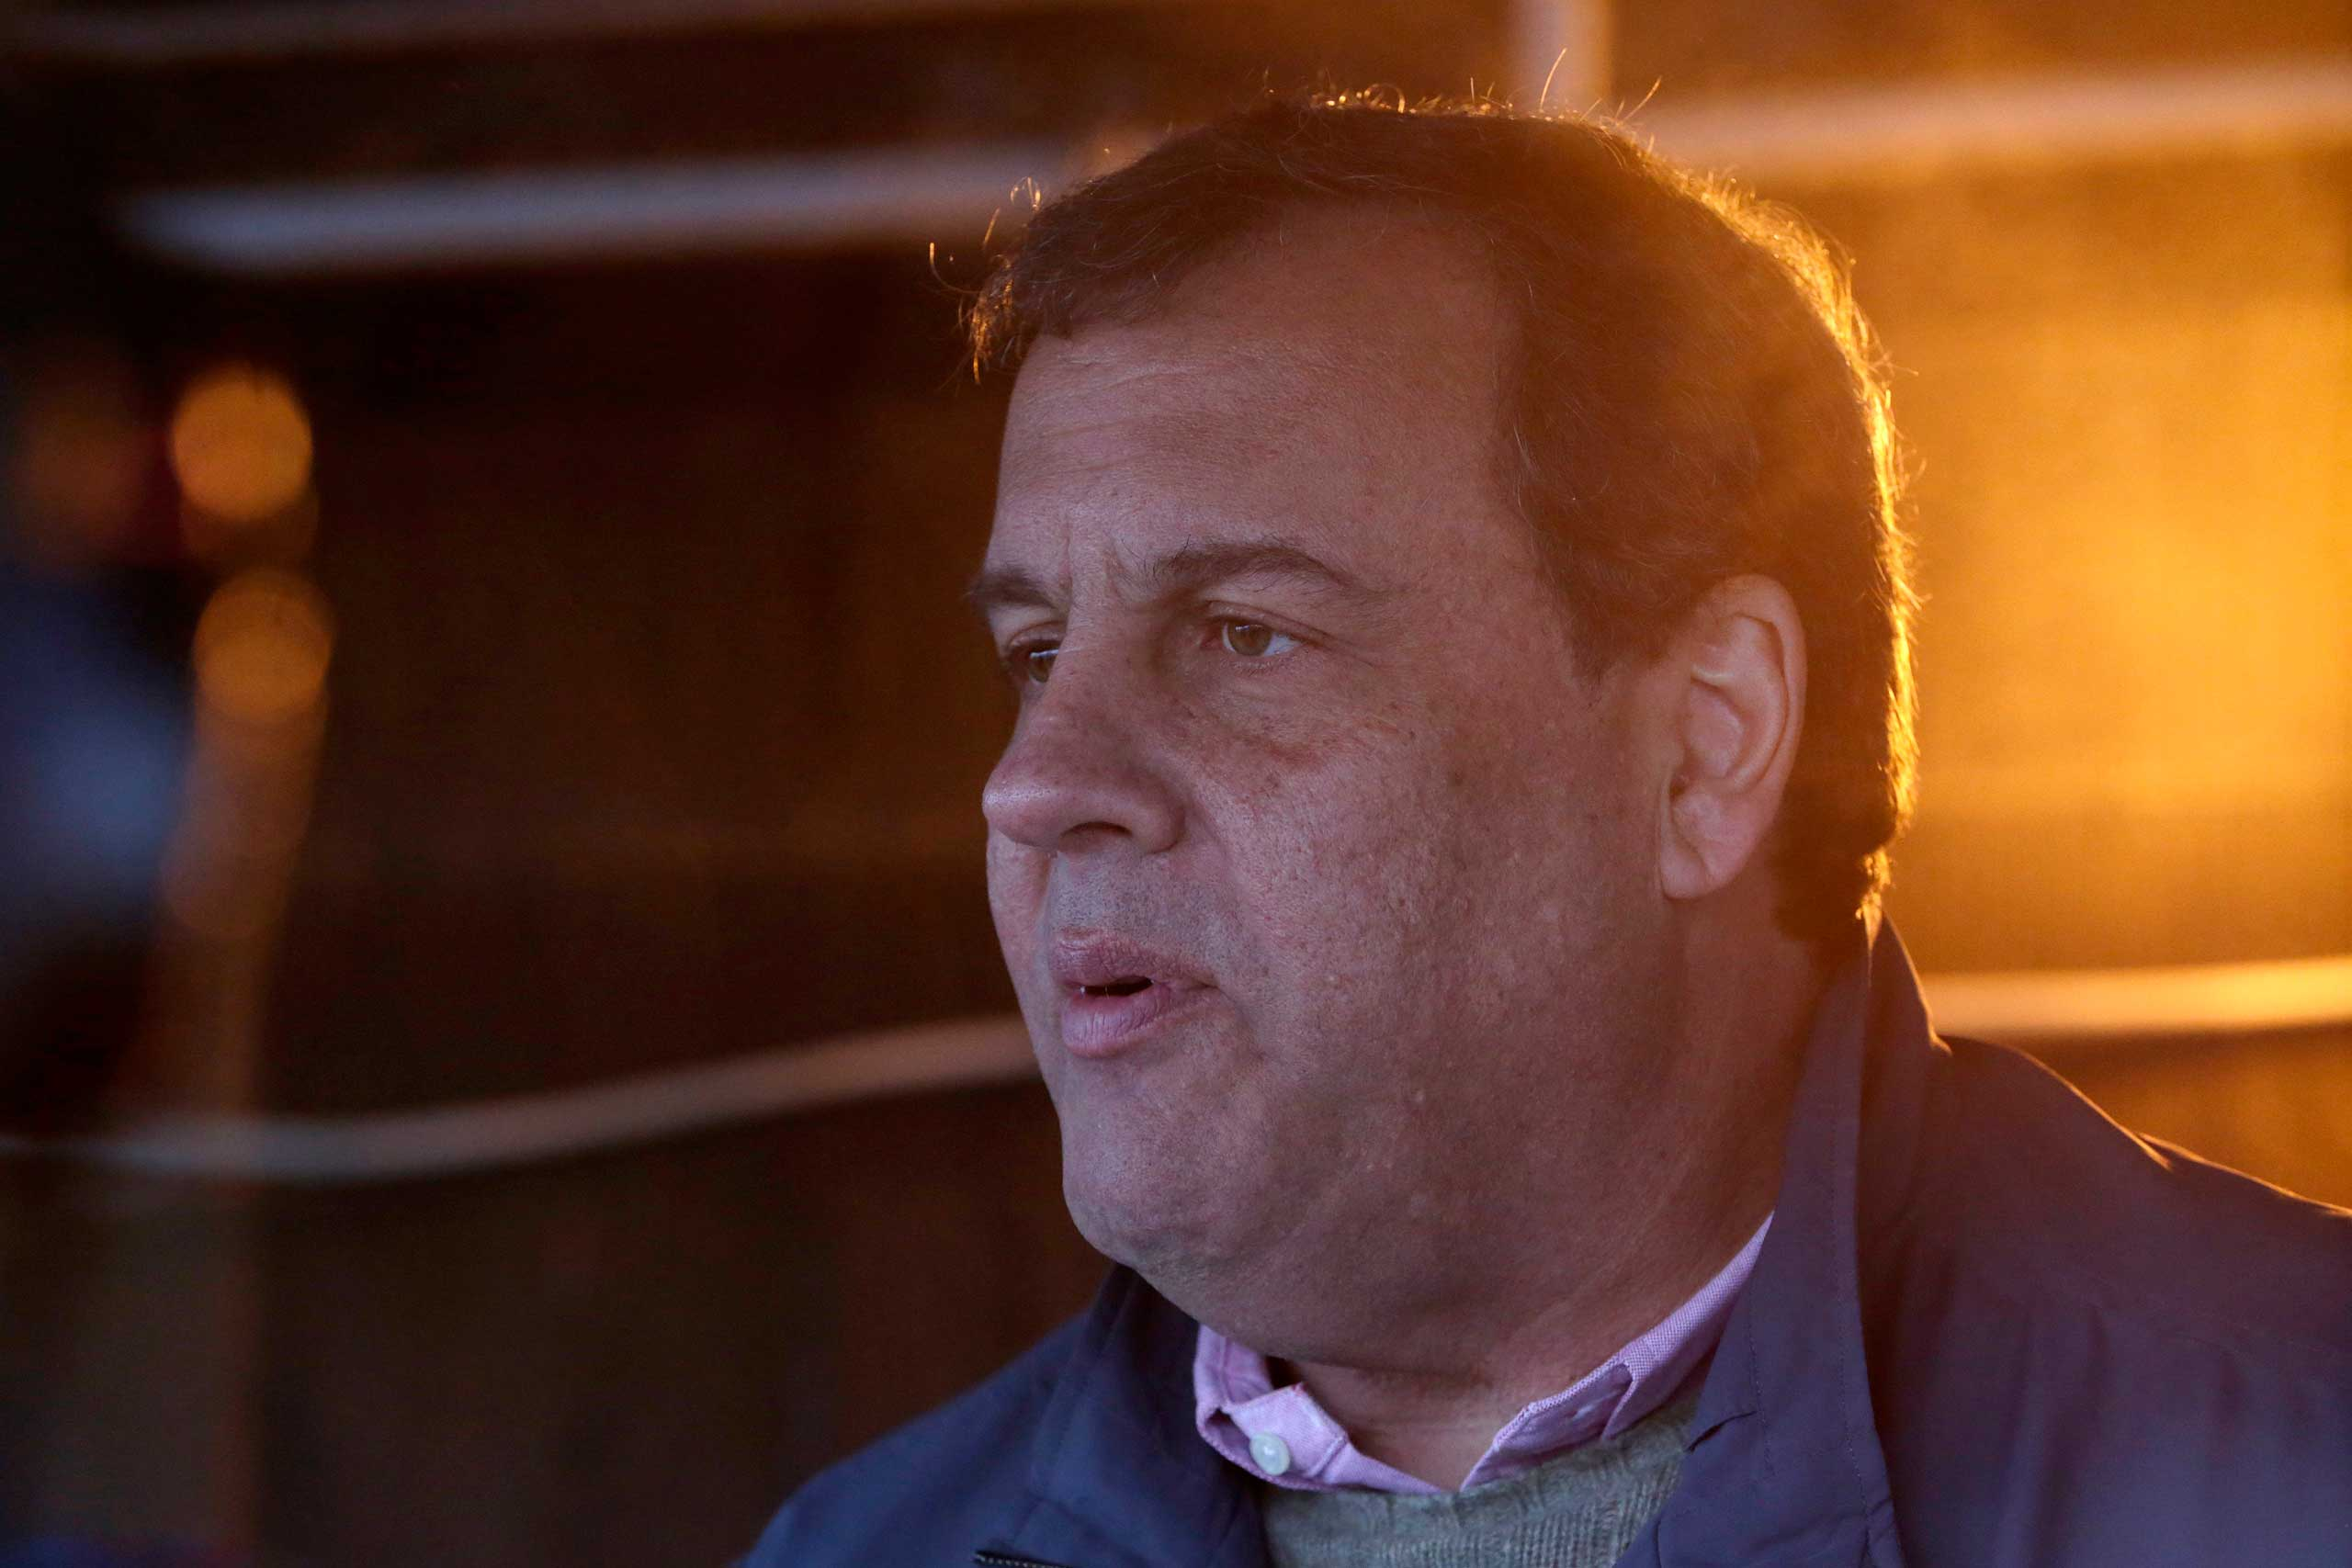 New Jersey Gov. Chris Christie hands at the St. John's Church soup kitchen on Nov. 26, 2014, in Newark, N.J.